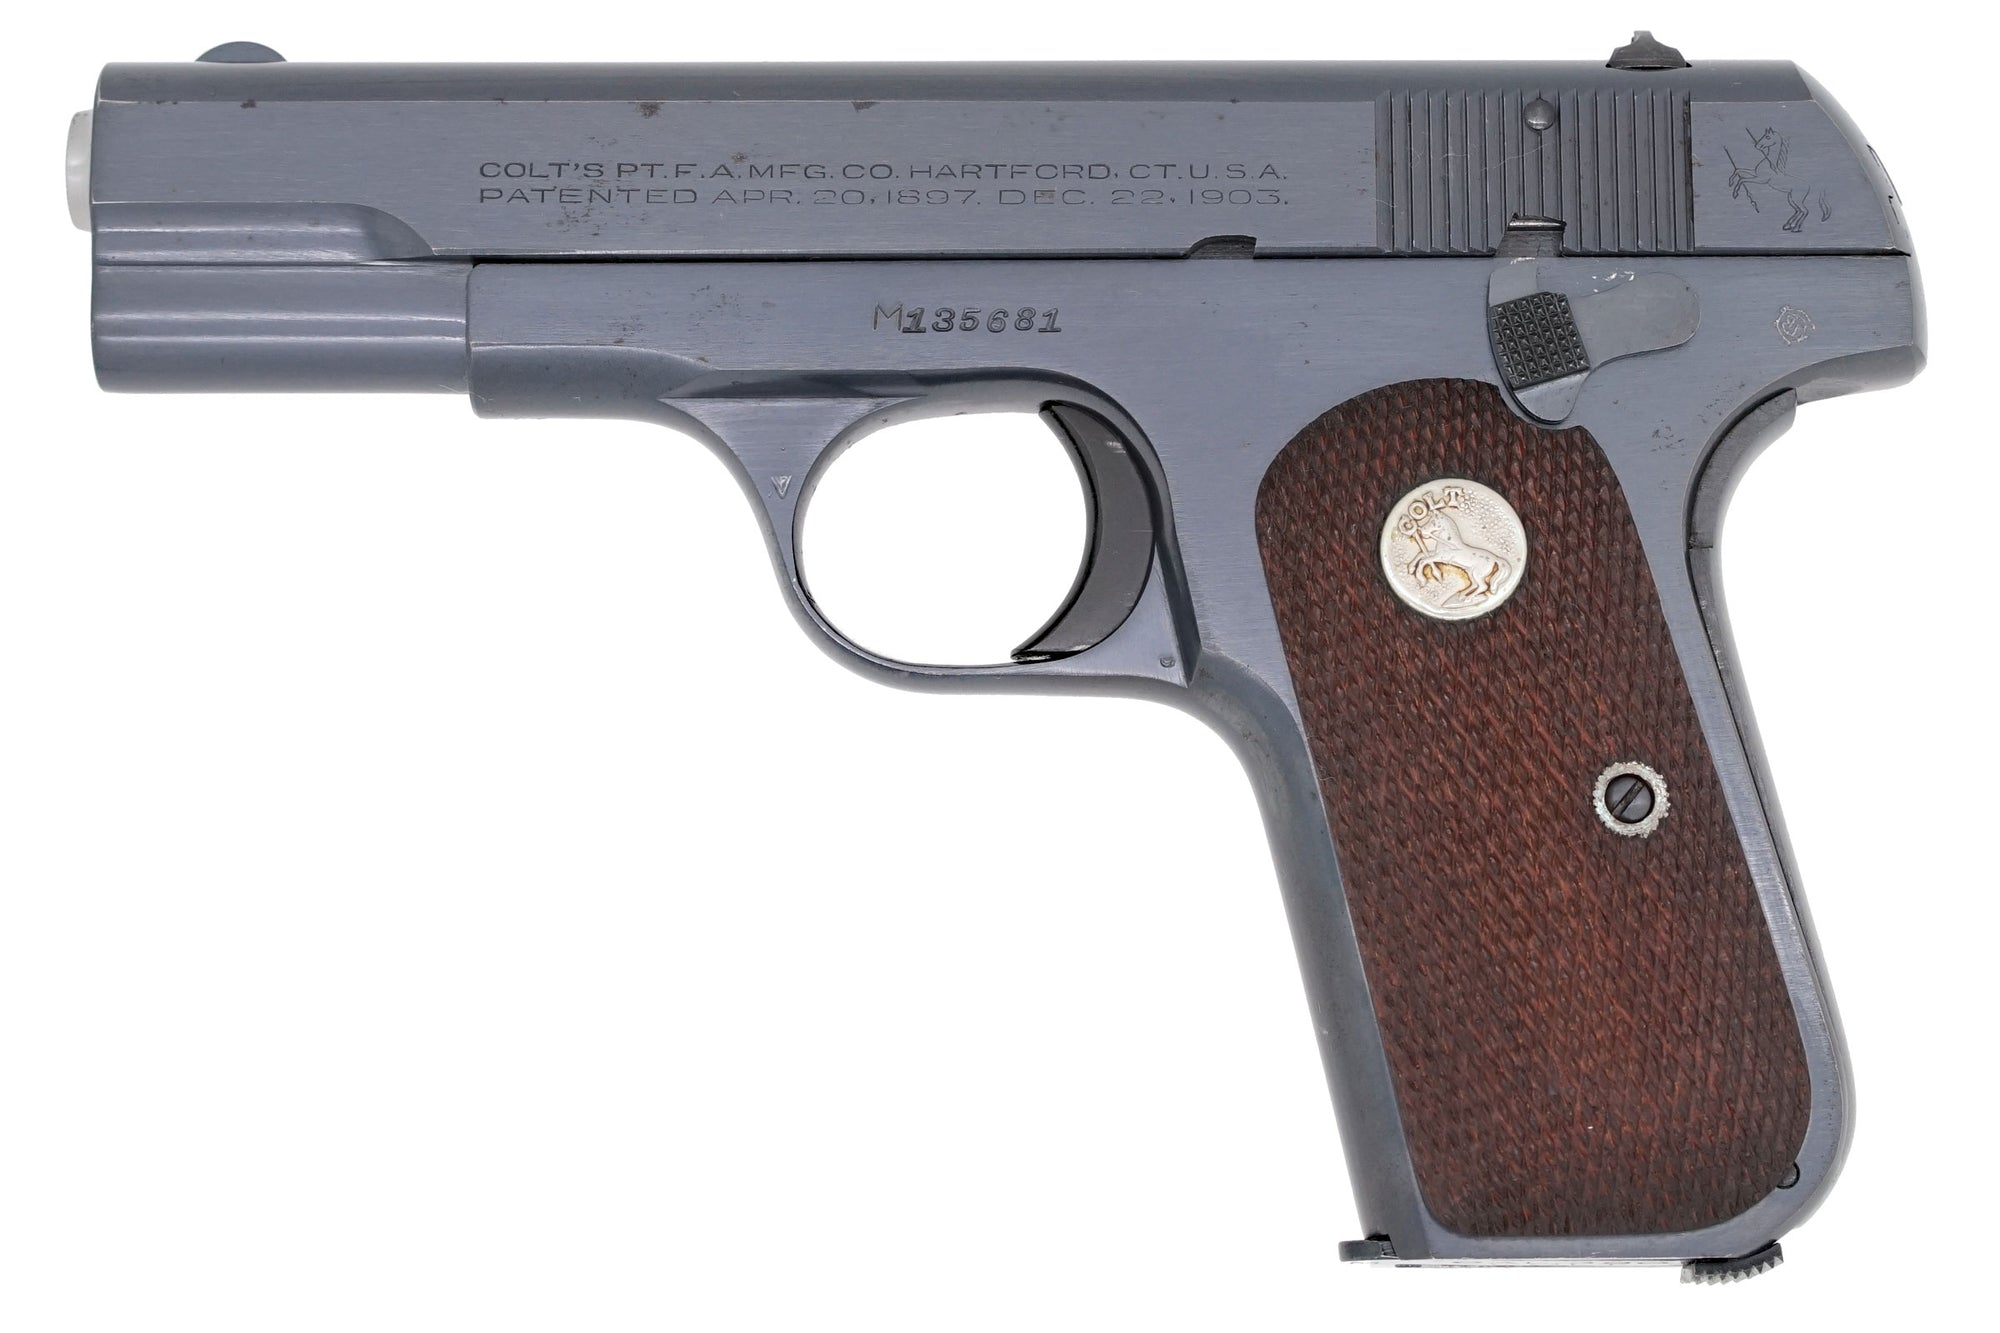 Colt 1908 Pocket Hammerless 380ACP SN:M135681 MFG:1944 Navy